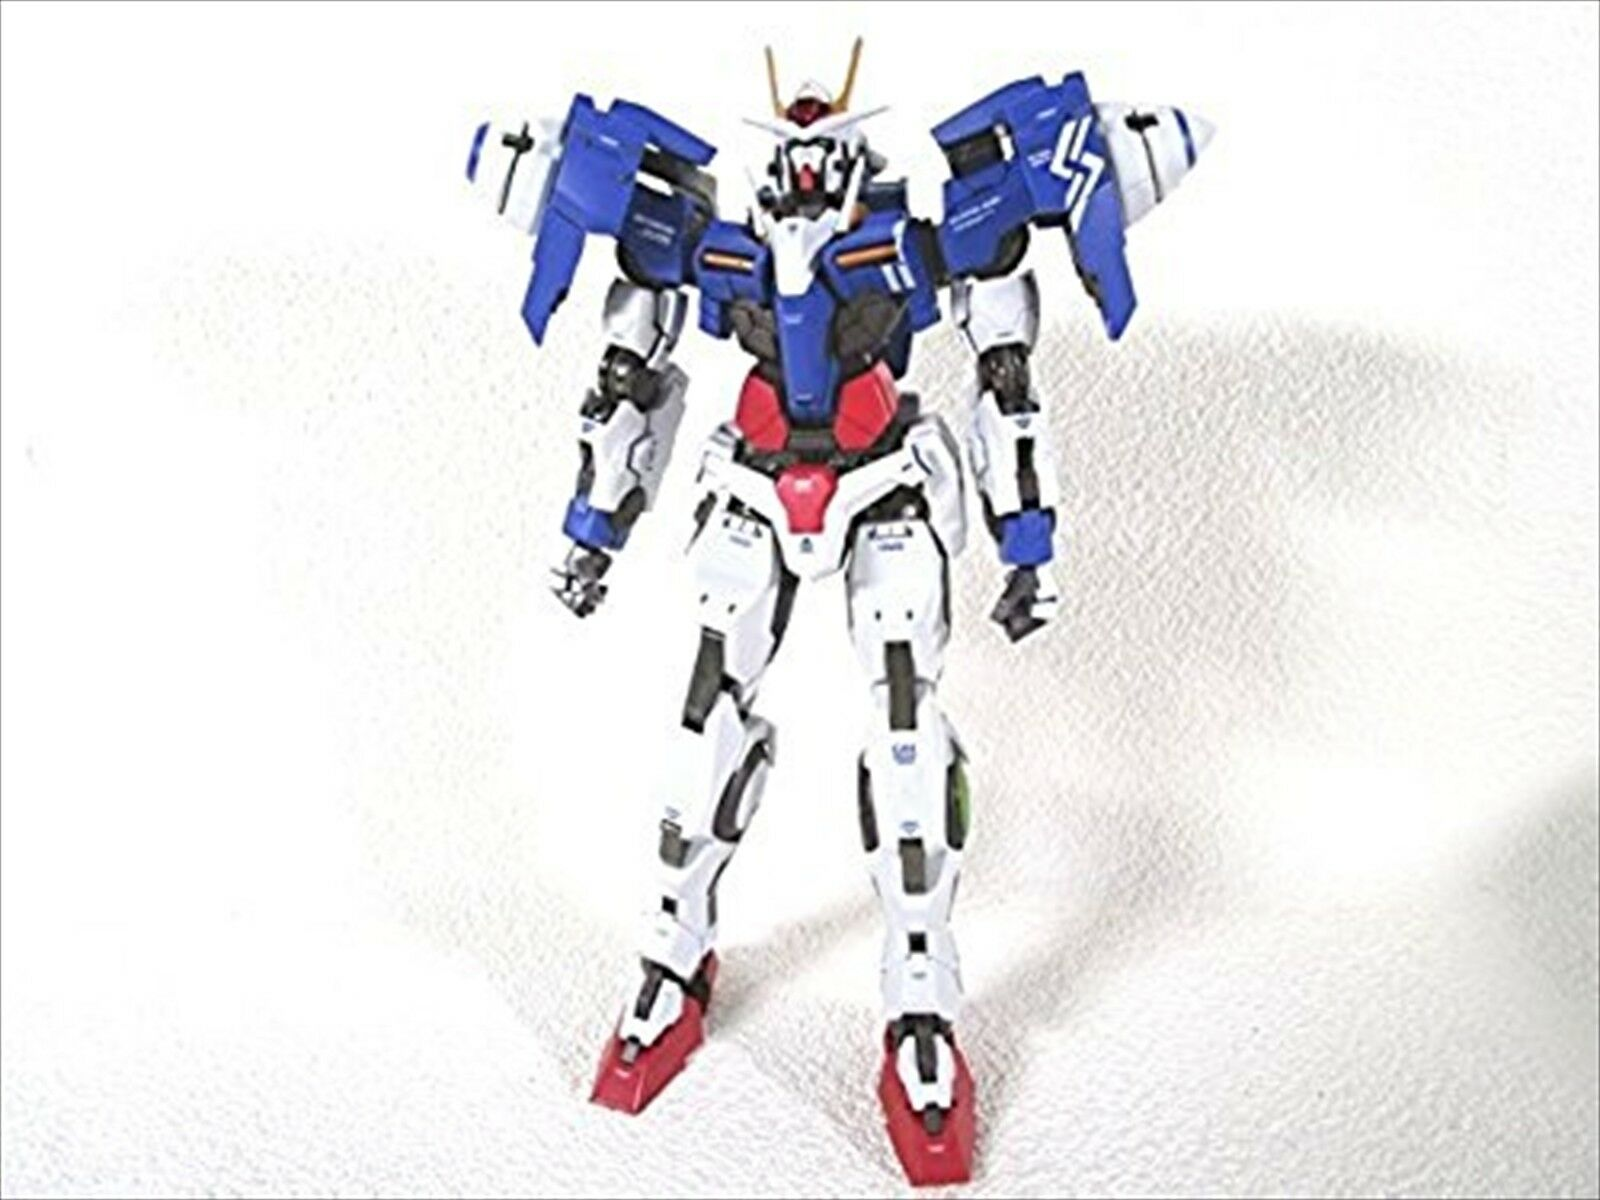 METAL BUILD Gundam 00 GN-0000 + GNR-010 00 RAISER Action Figure BANDAI F/S USED